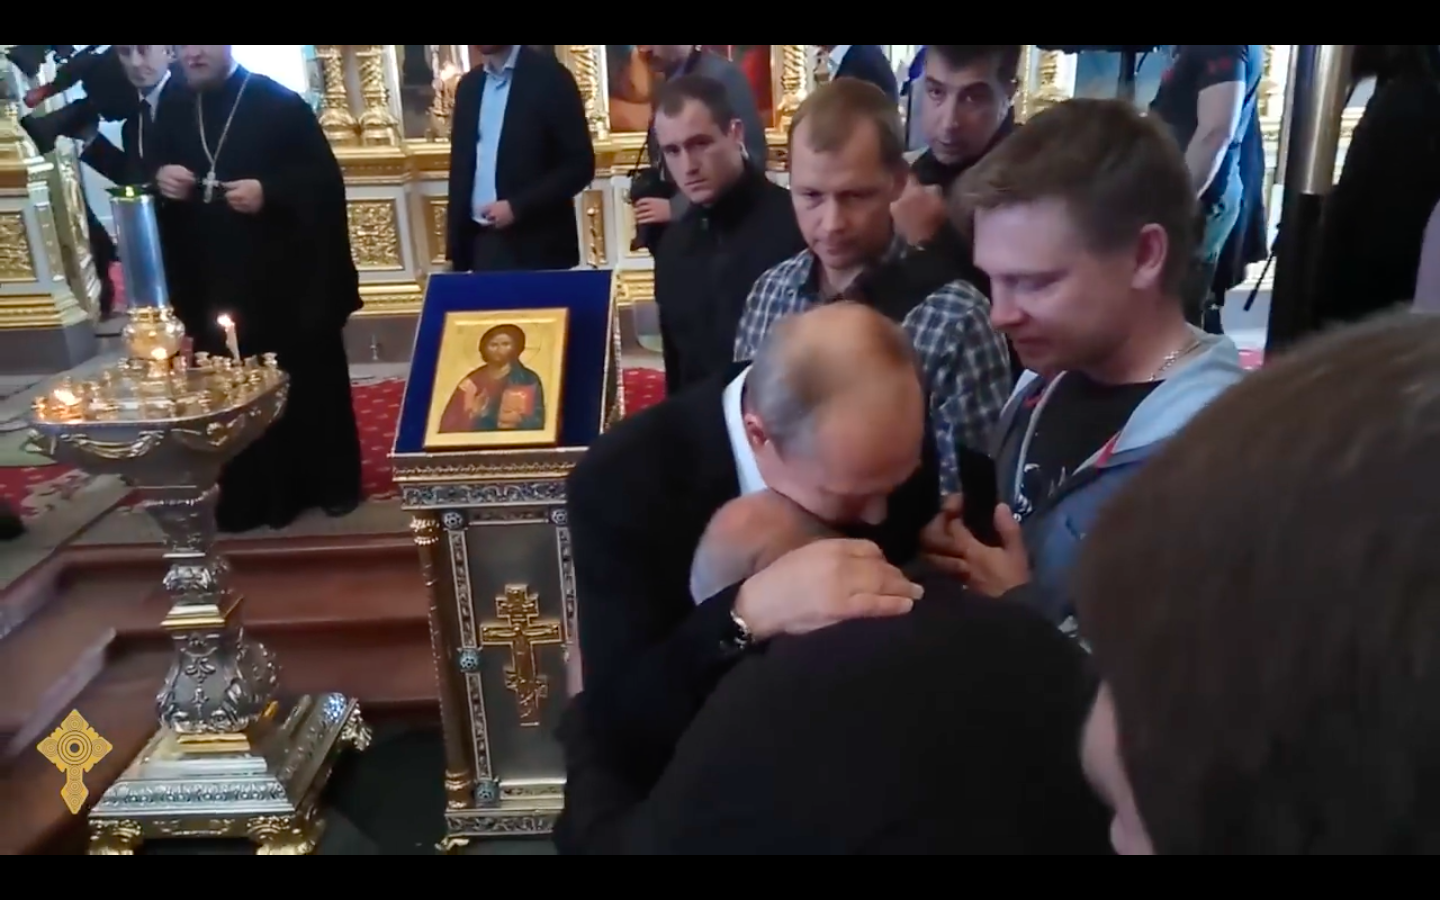 Does Putin Believe Himself To Be The Savior Of Russia, Blessed By God?